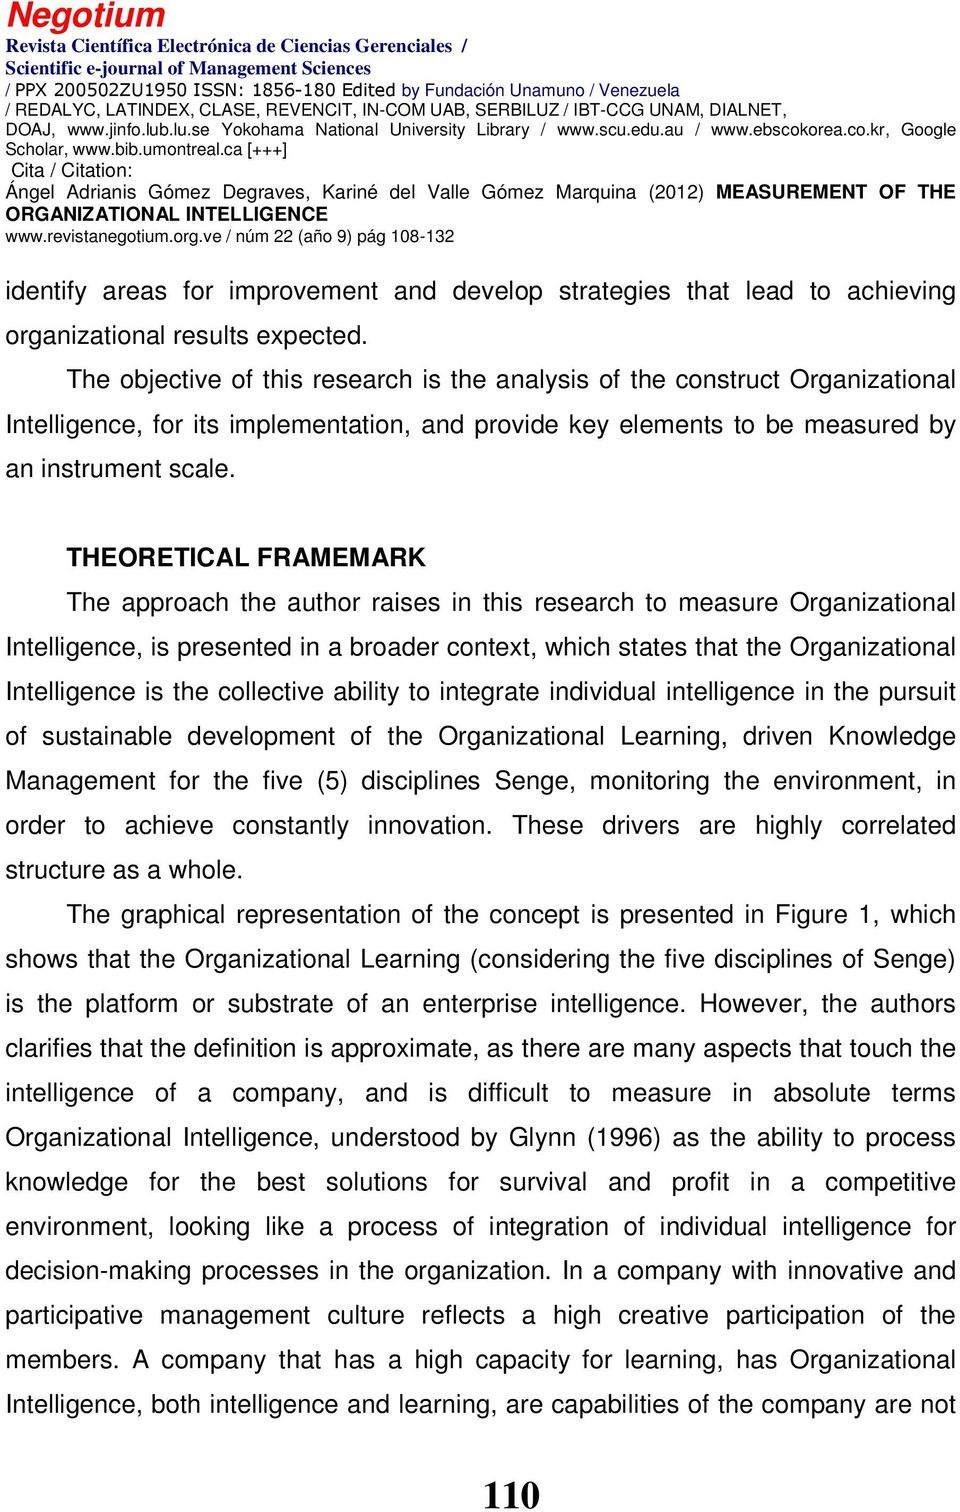 THEORETICAL FRAMEMARK The approach the author raises in this research to measure Organizational Intelligence, is presented in a broader context, which states that the Organizational Intelligence is